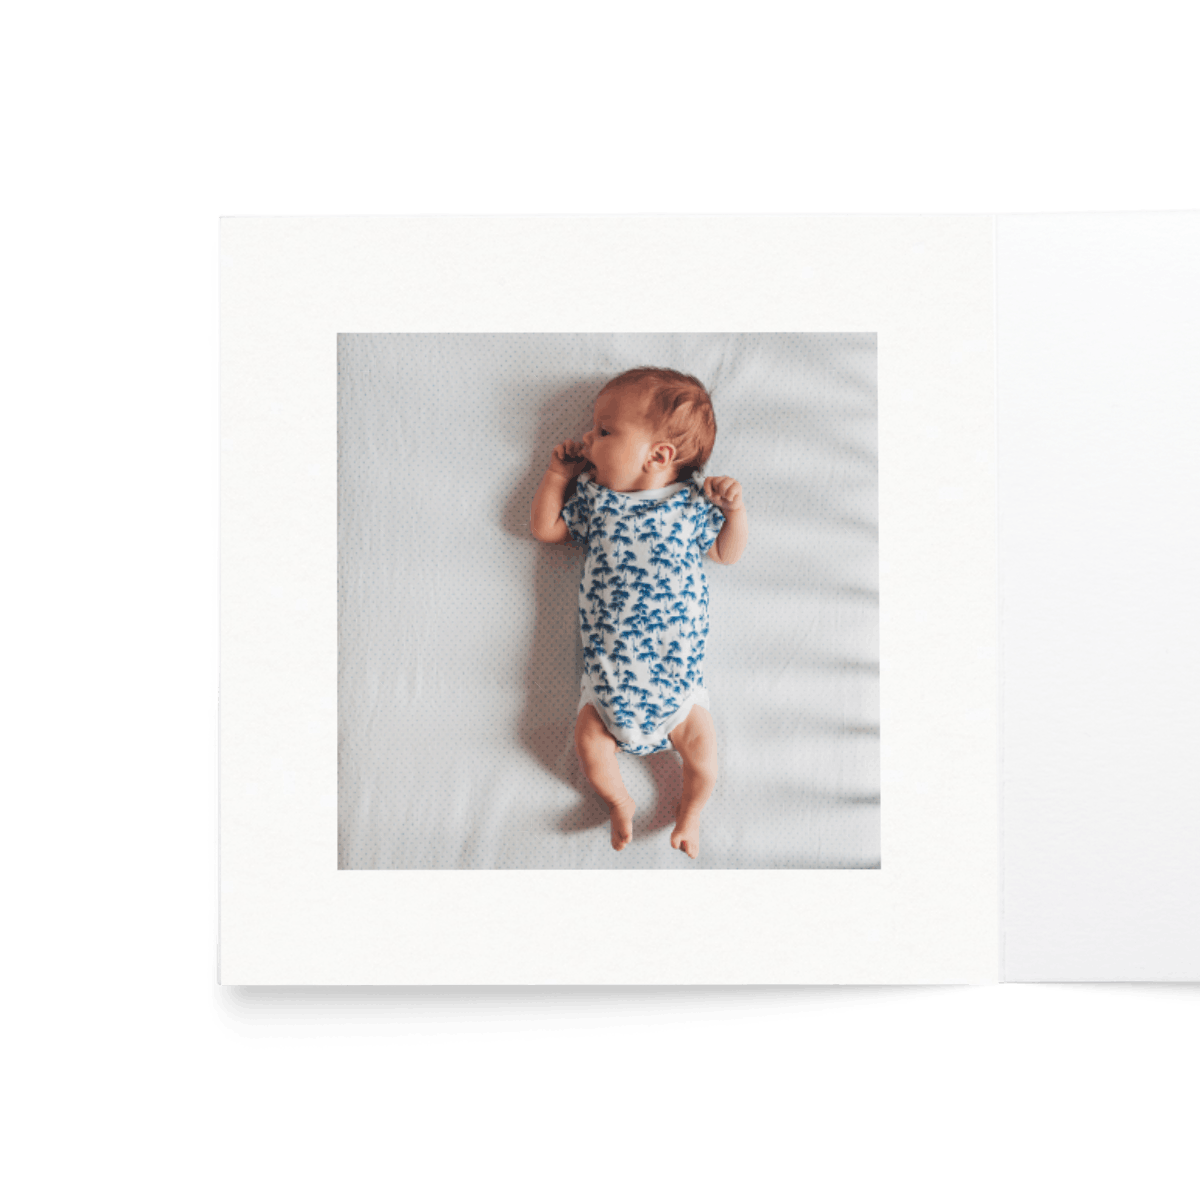 Https%3a%2f%2fwww.papier.com%2fproduct image%2f79005%2f49%2fbaby photo frame 16757 innen links 1560162416.png?ixlib=rb 1.1